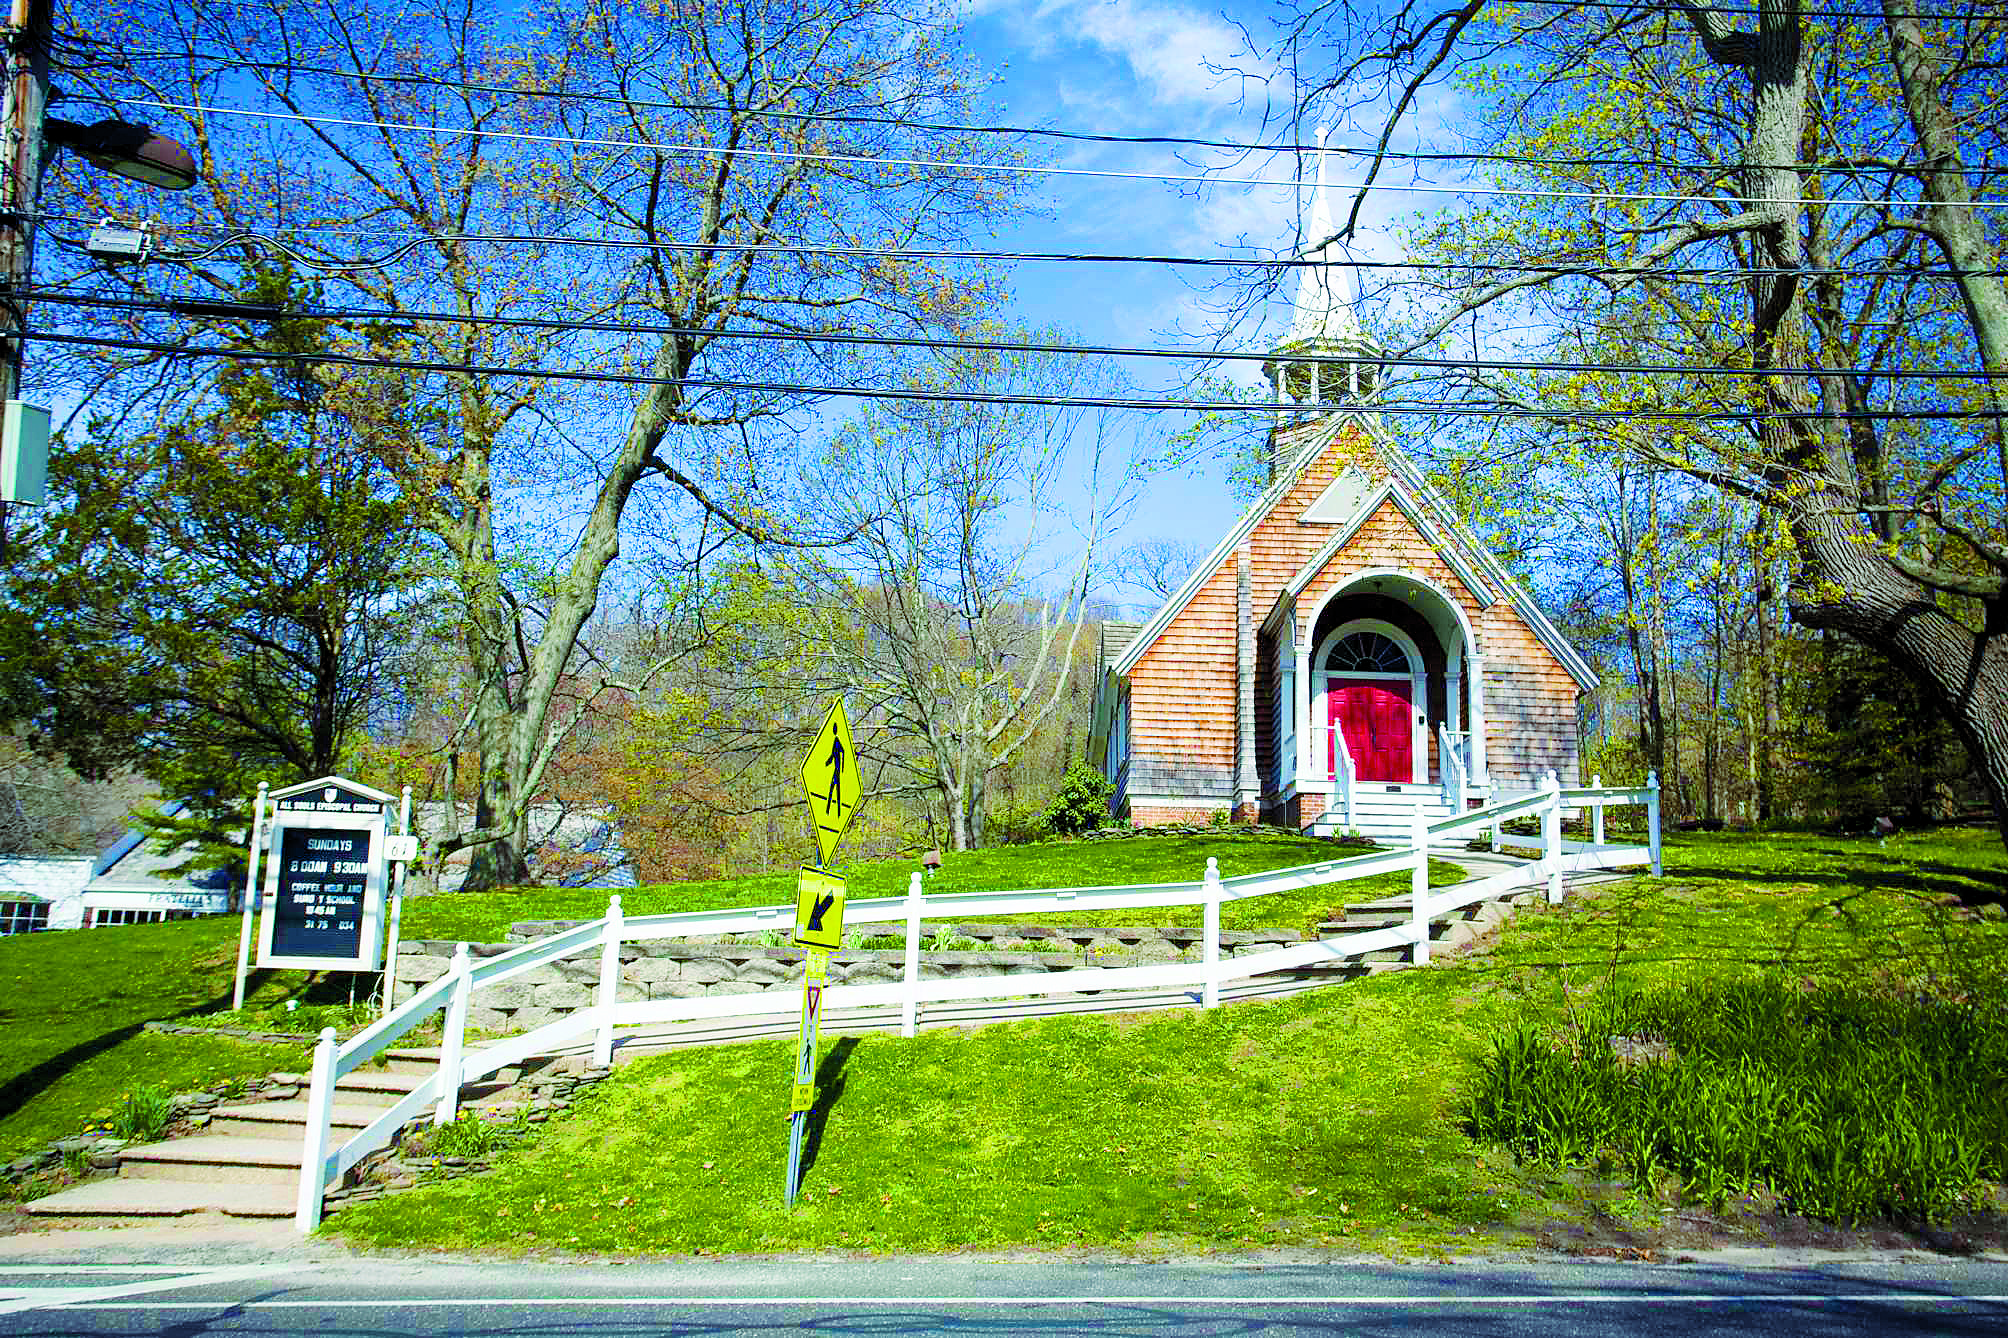 The All Souls Episcopal Church Is Located In The Heart Of Stony Brook Village Photo Credit Heather Walsh Episcopal Church Village Mansions